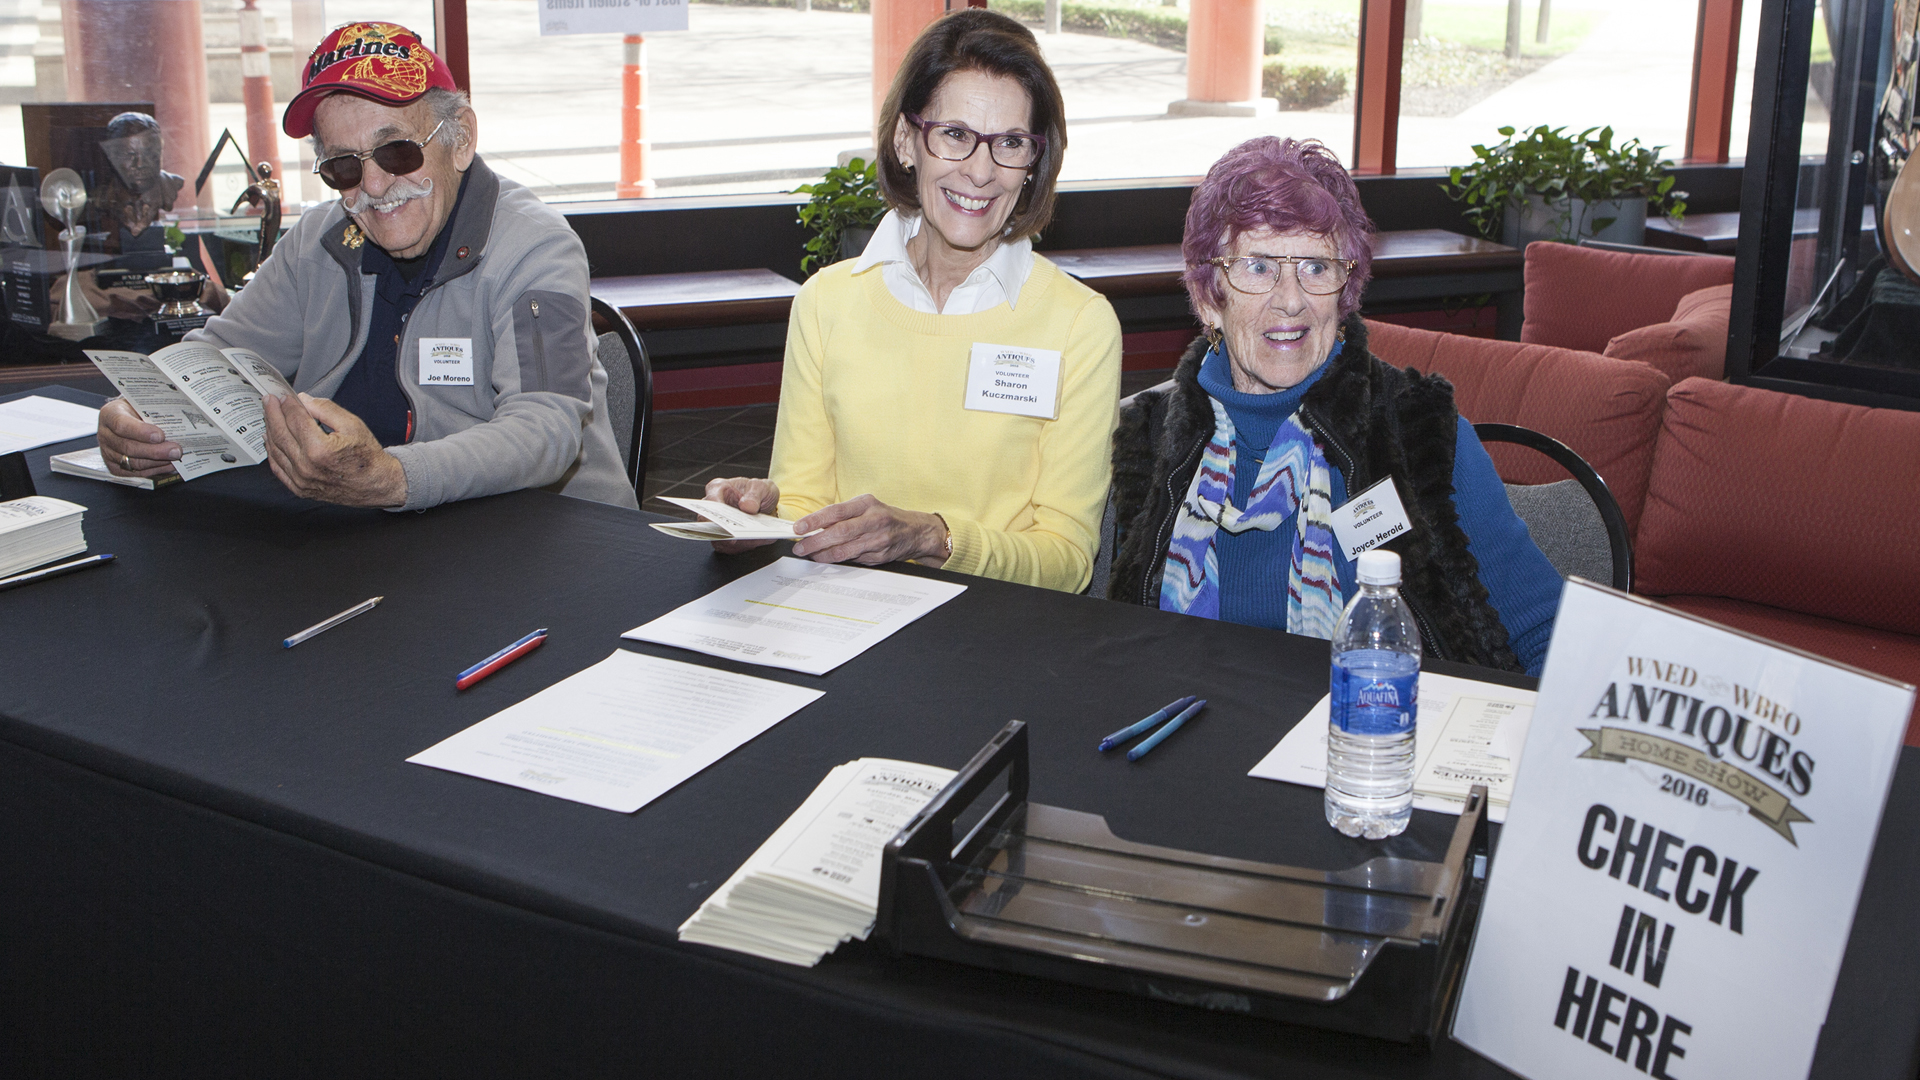 Volunteers greet guests arriving for Antiques Home Show